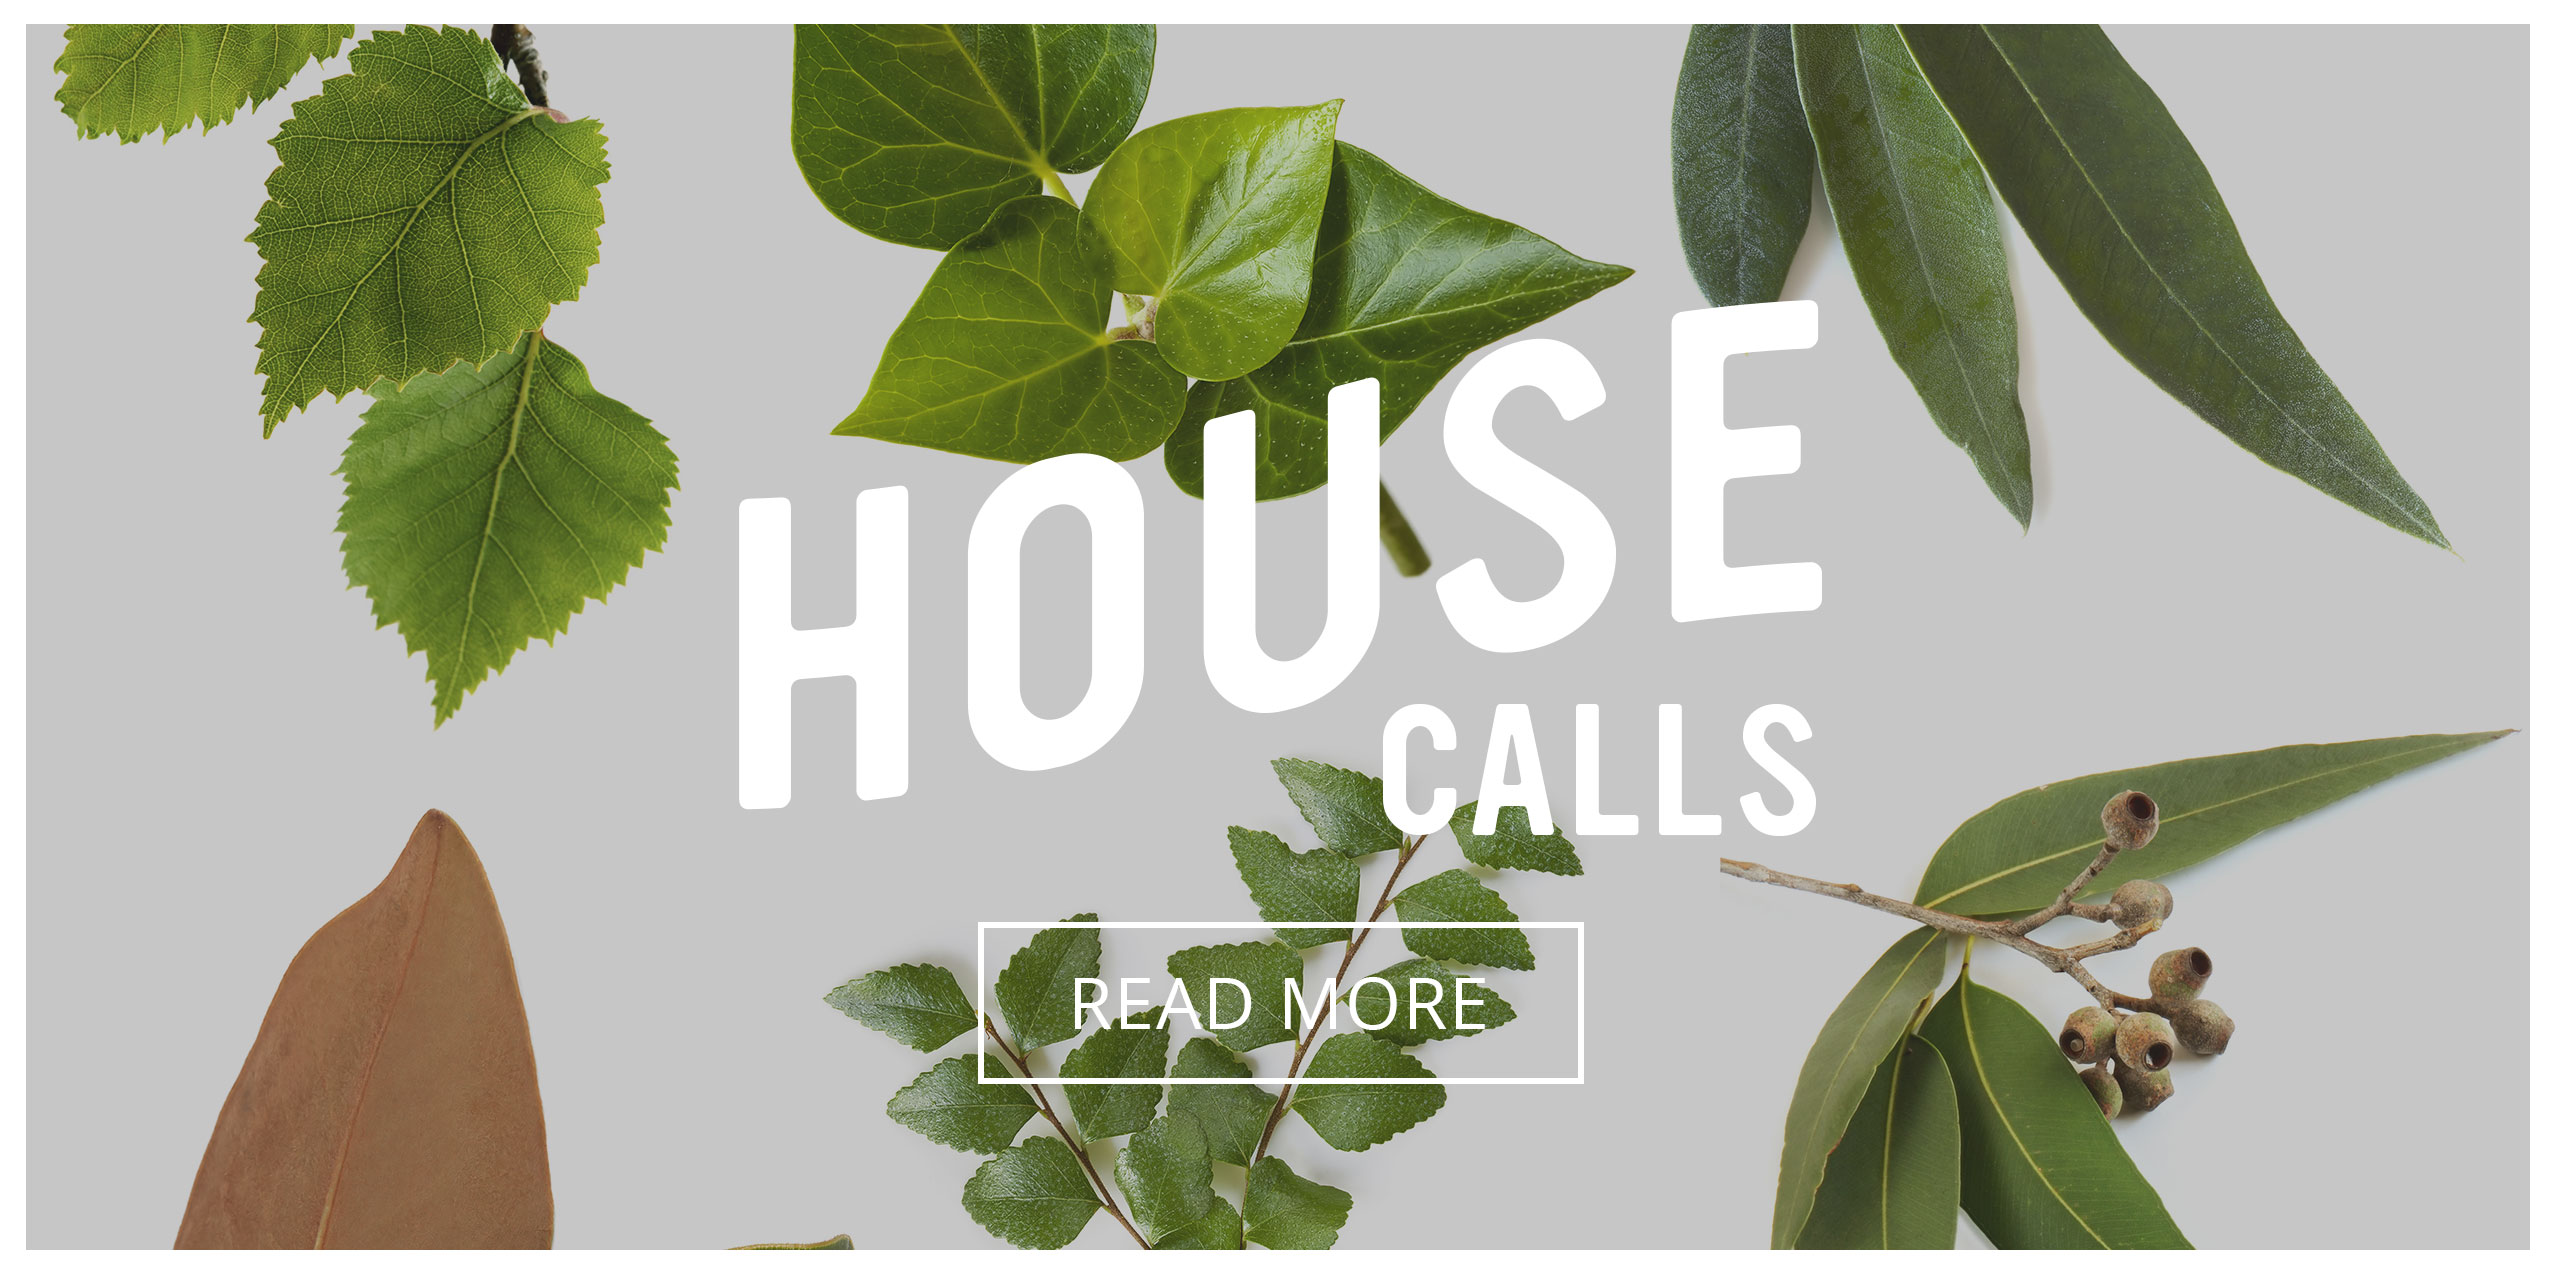 Playful Learning Studio: House Calls